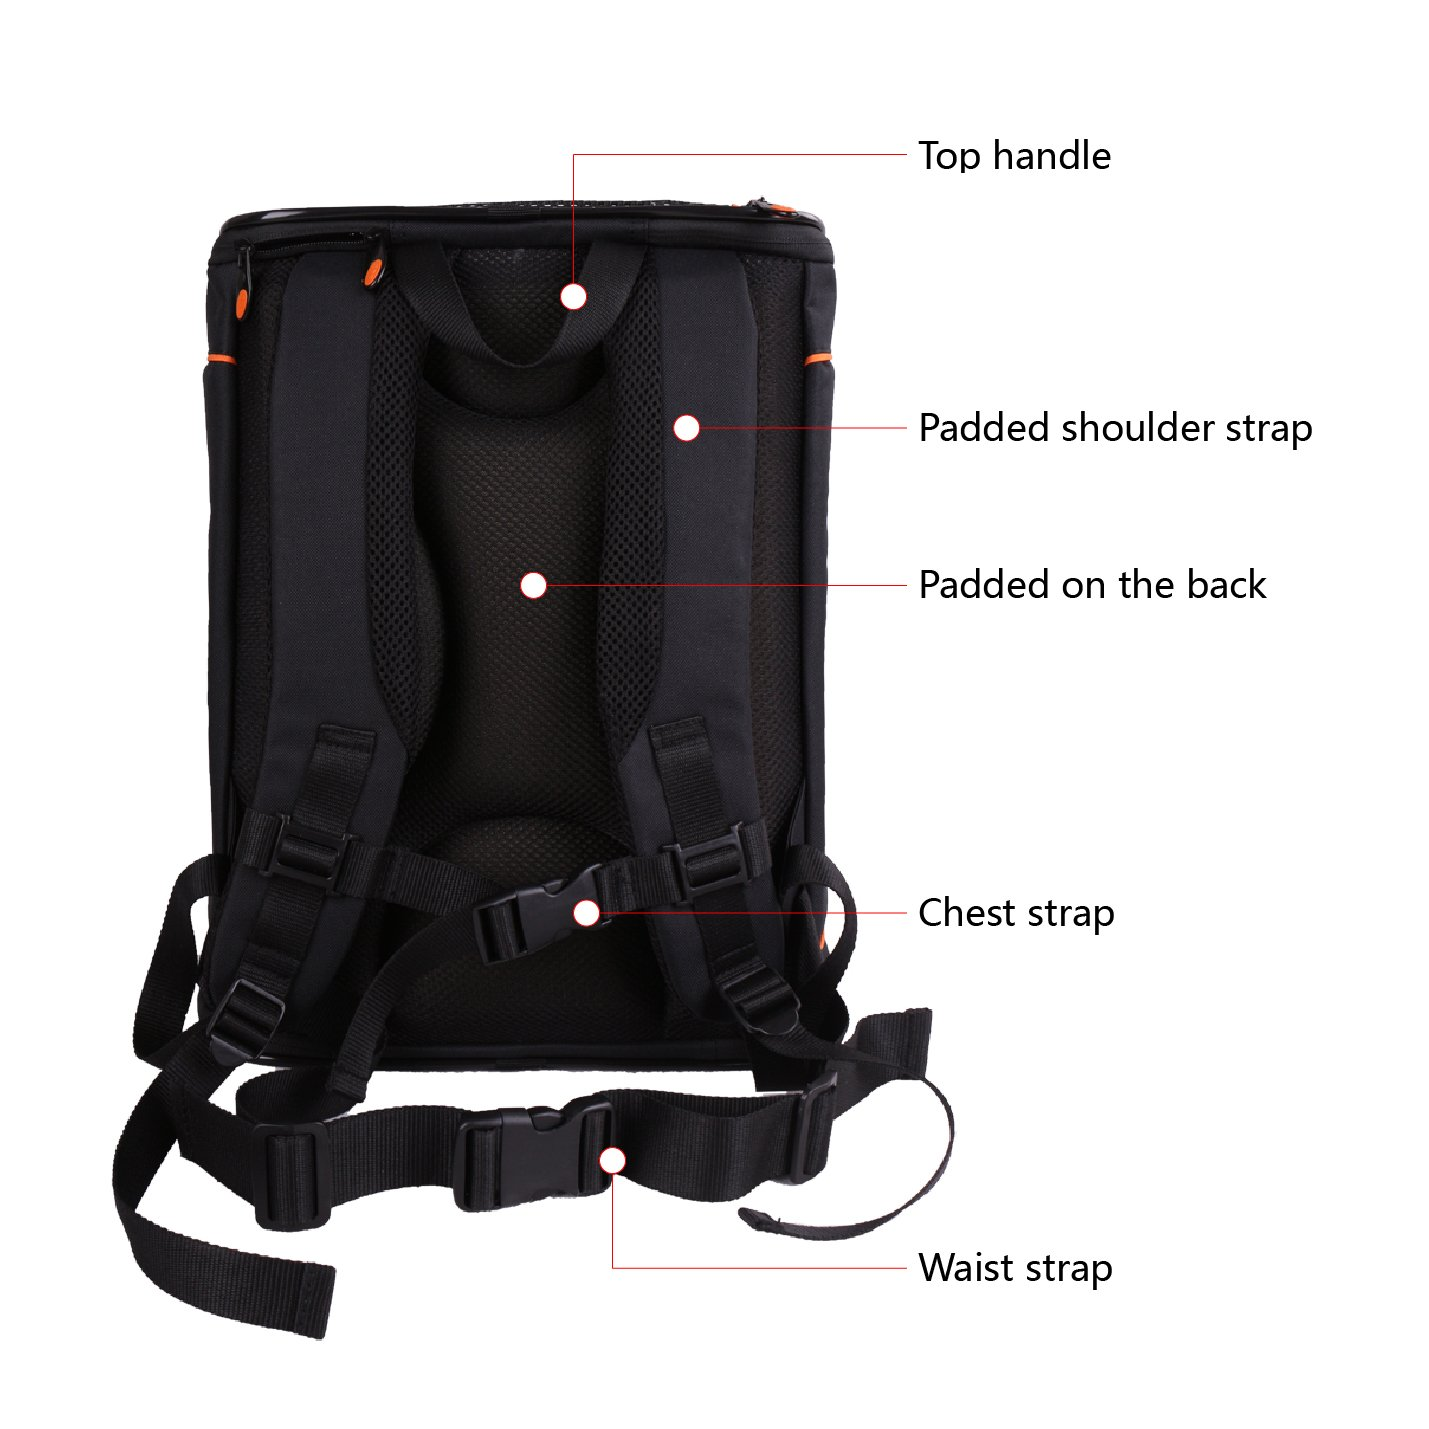 Petsfit 43cmx32cmx29cm Comfort Dogs Carriers Backpack,Hold Pets Up To 15 Pounds